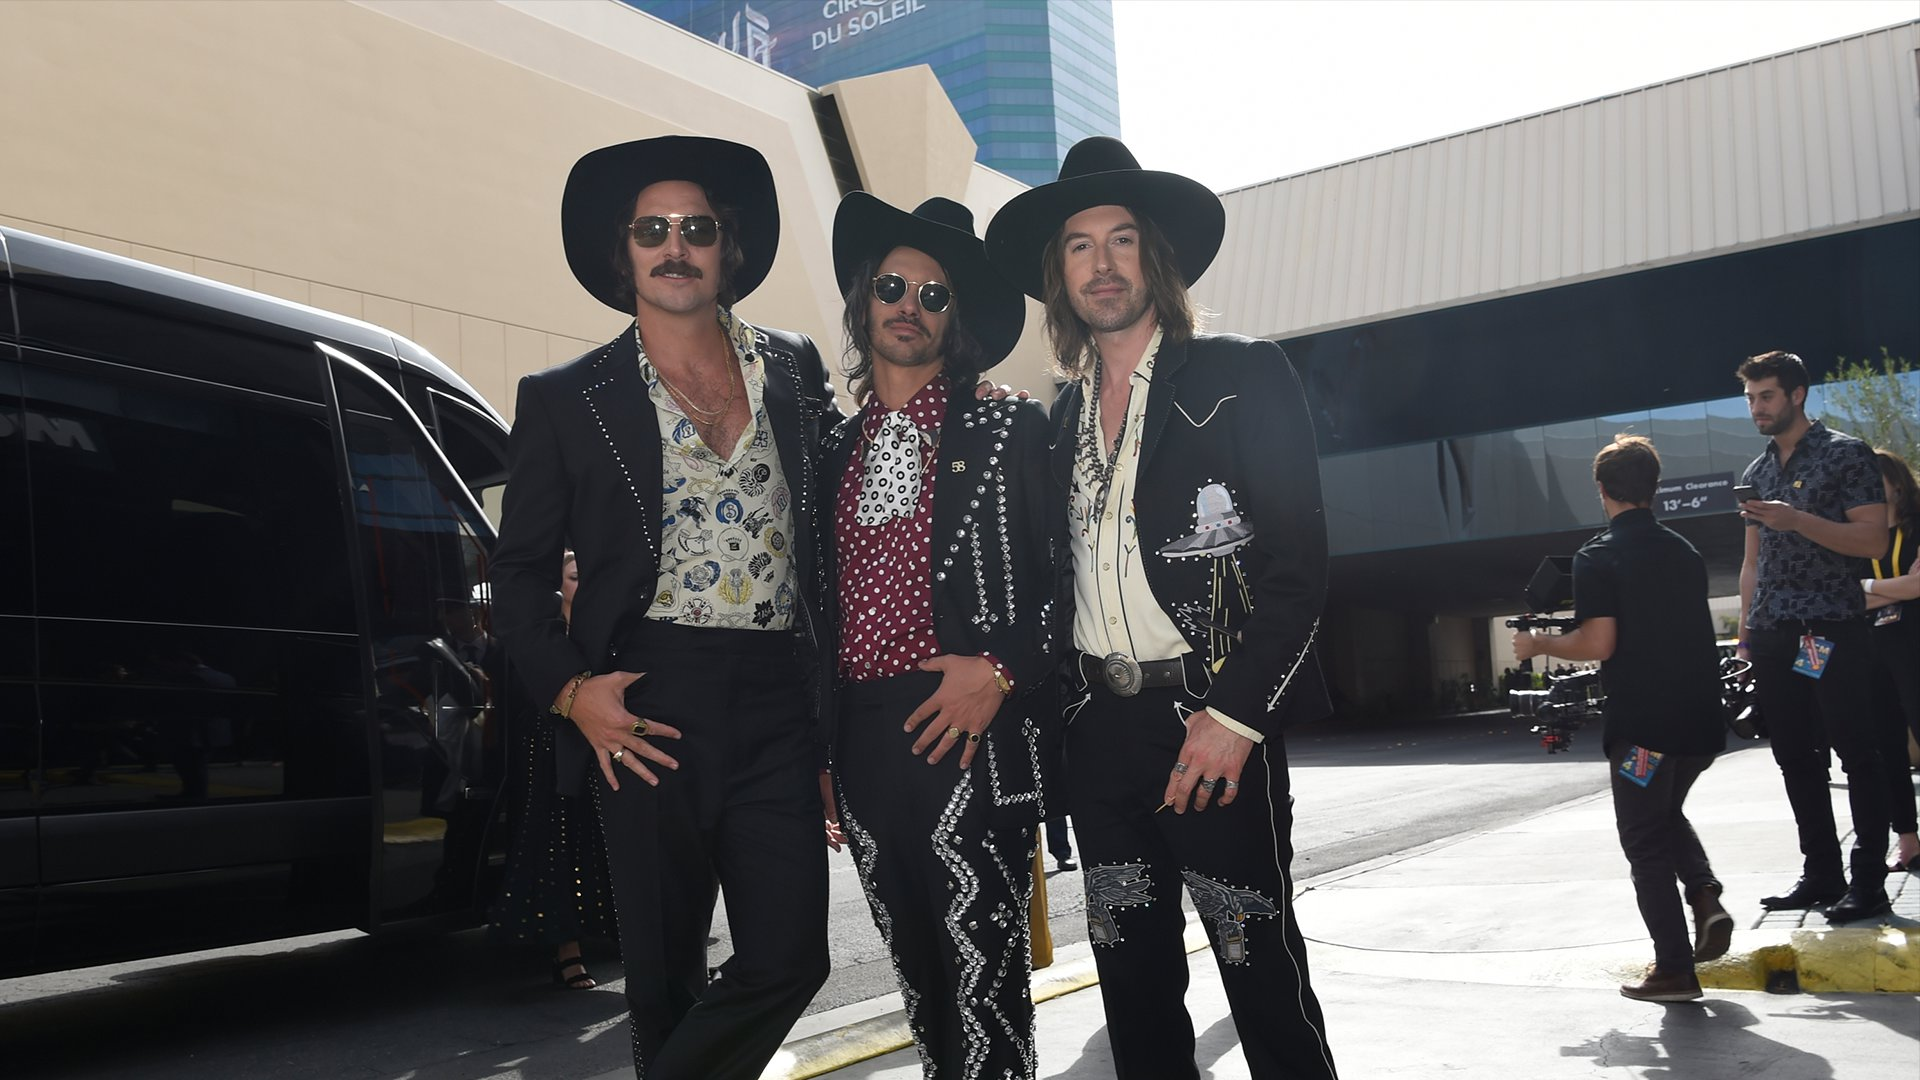 Midland, winner of New Vocal Duo or Group of the Year, wear matching cowboy hats on the ACM red carpet.